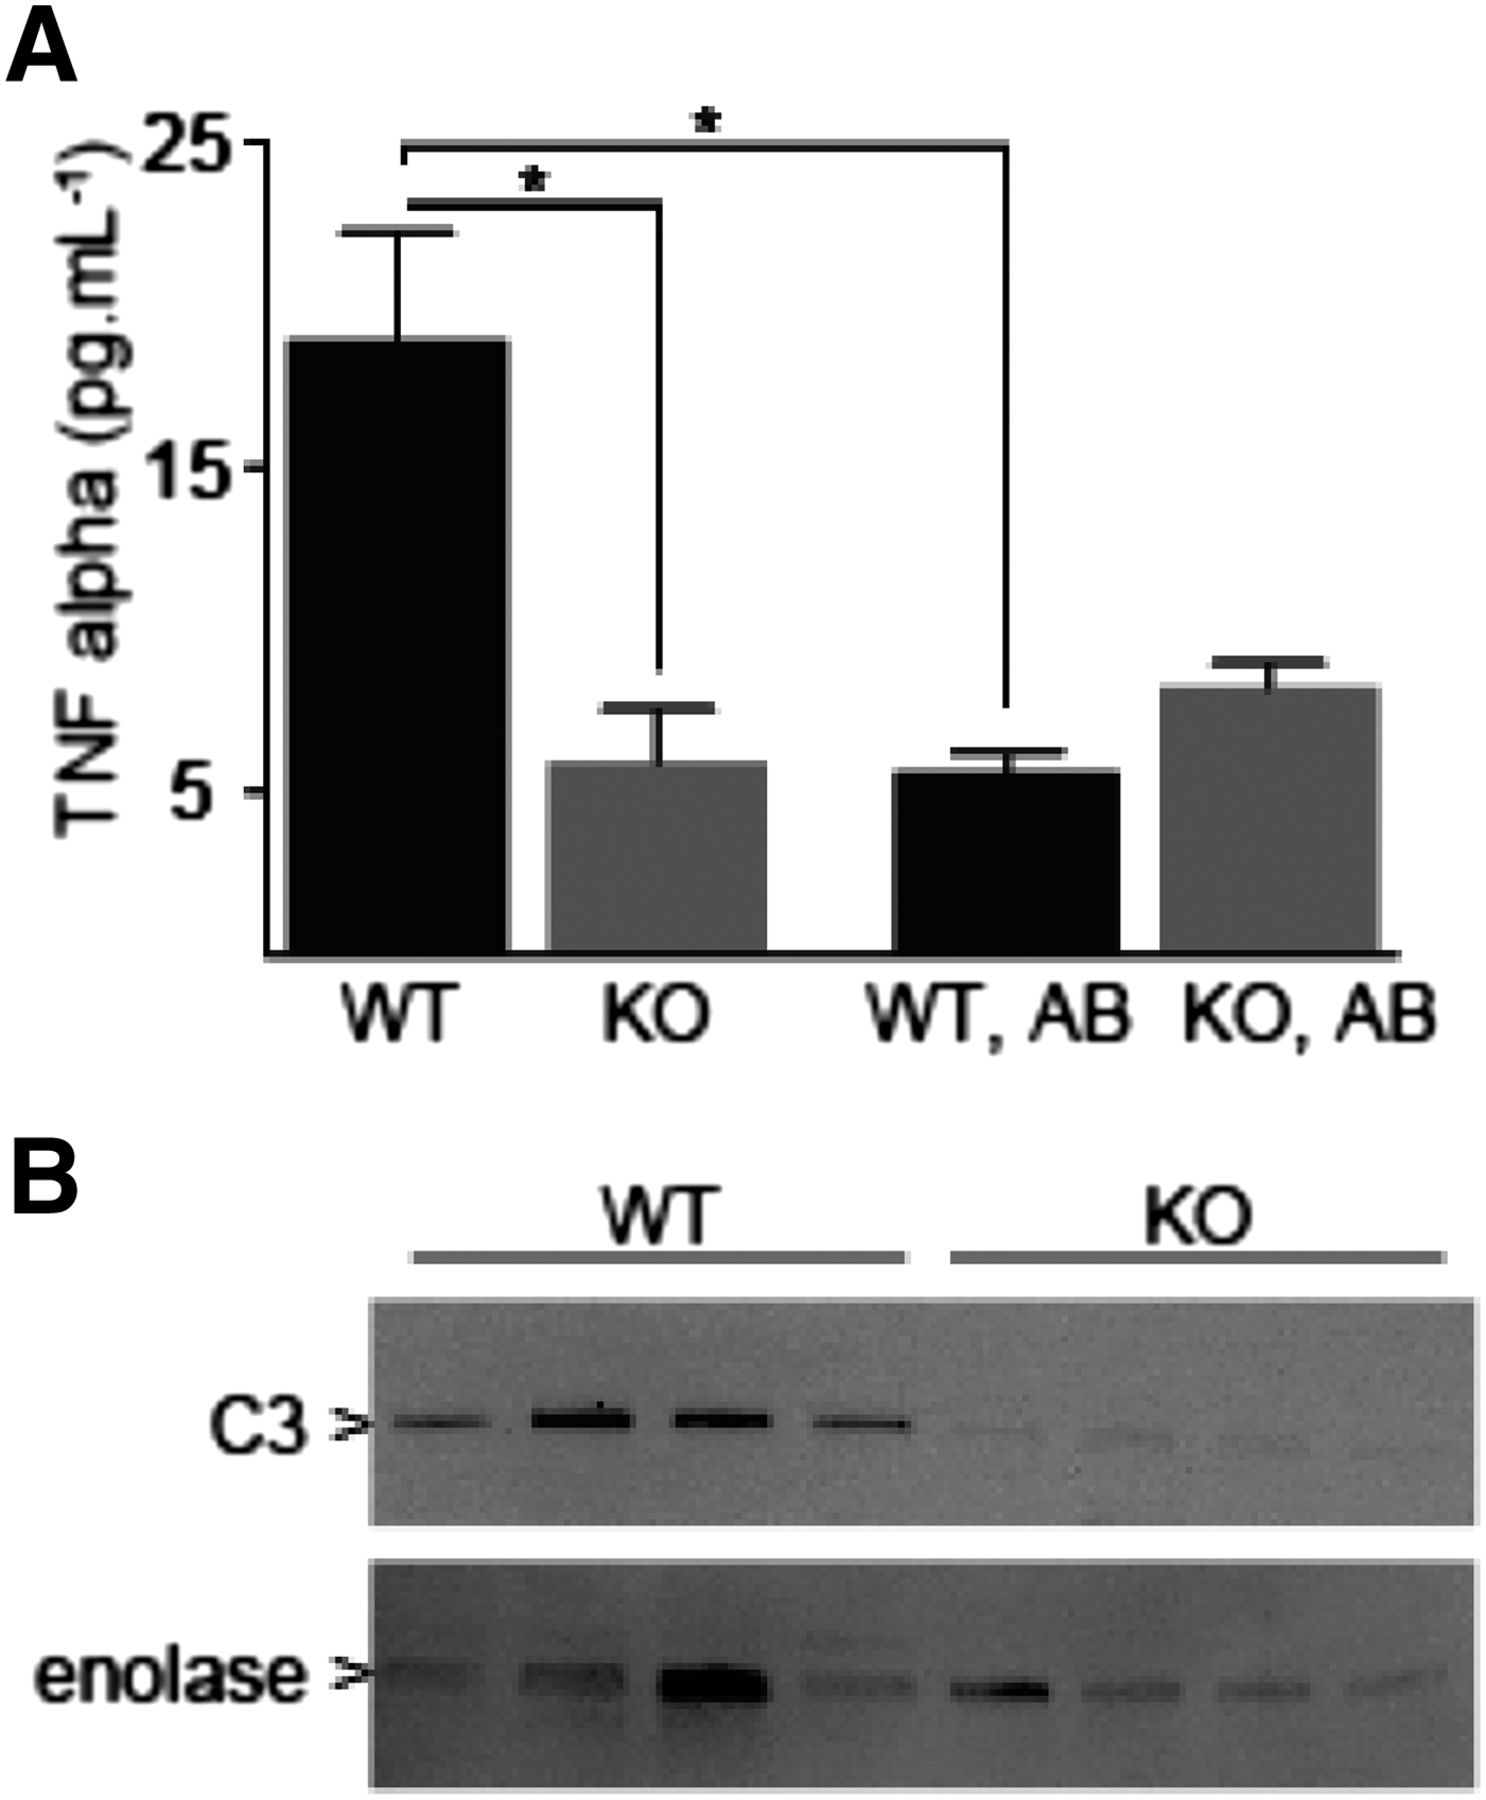 Identification of Flavin Containing Monooxygenase 5 FMO5 as a